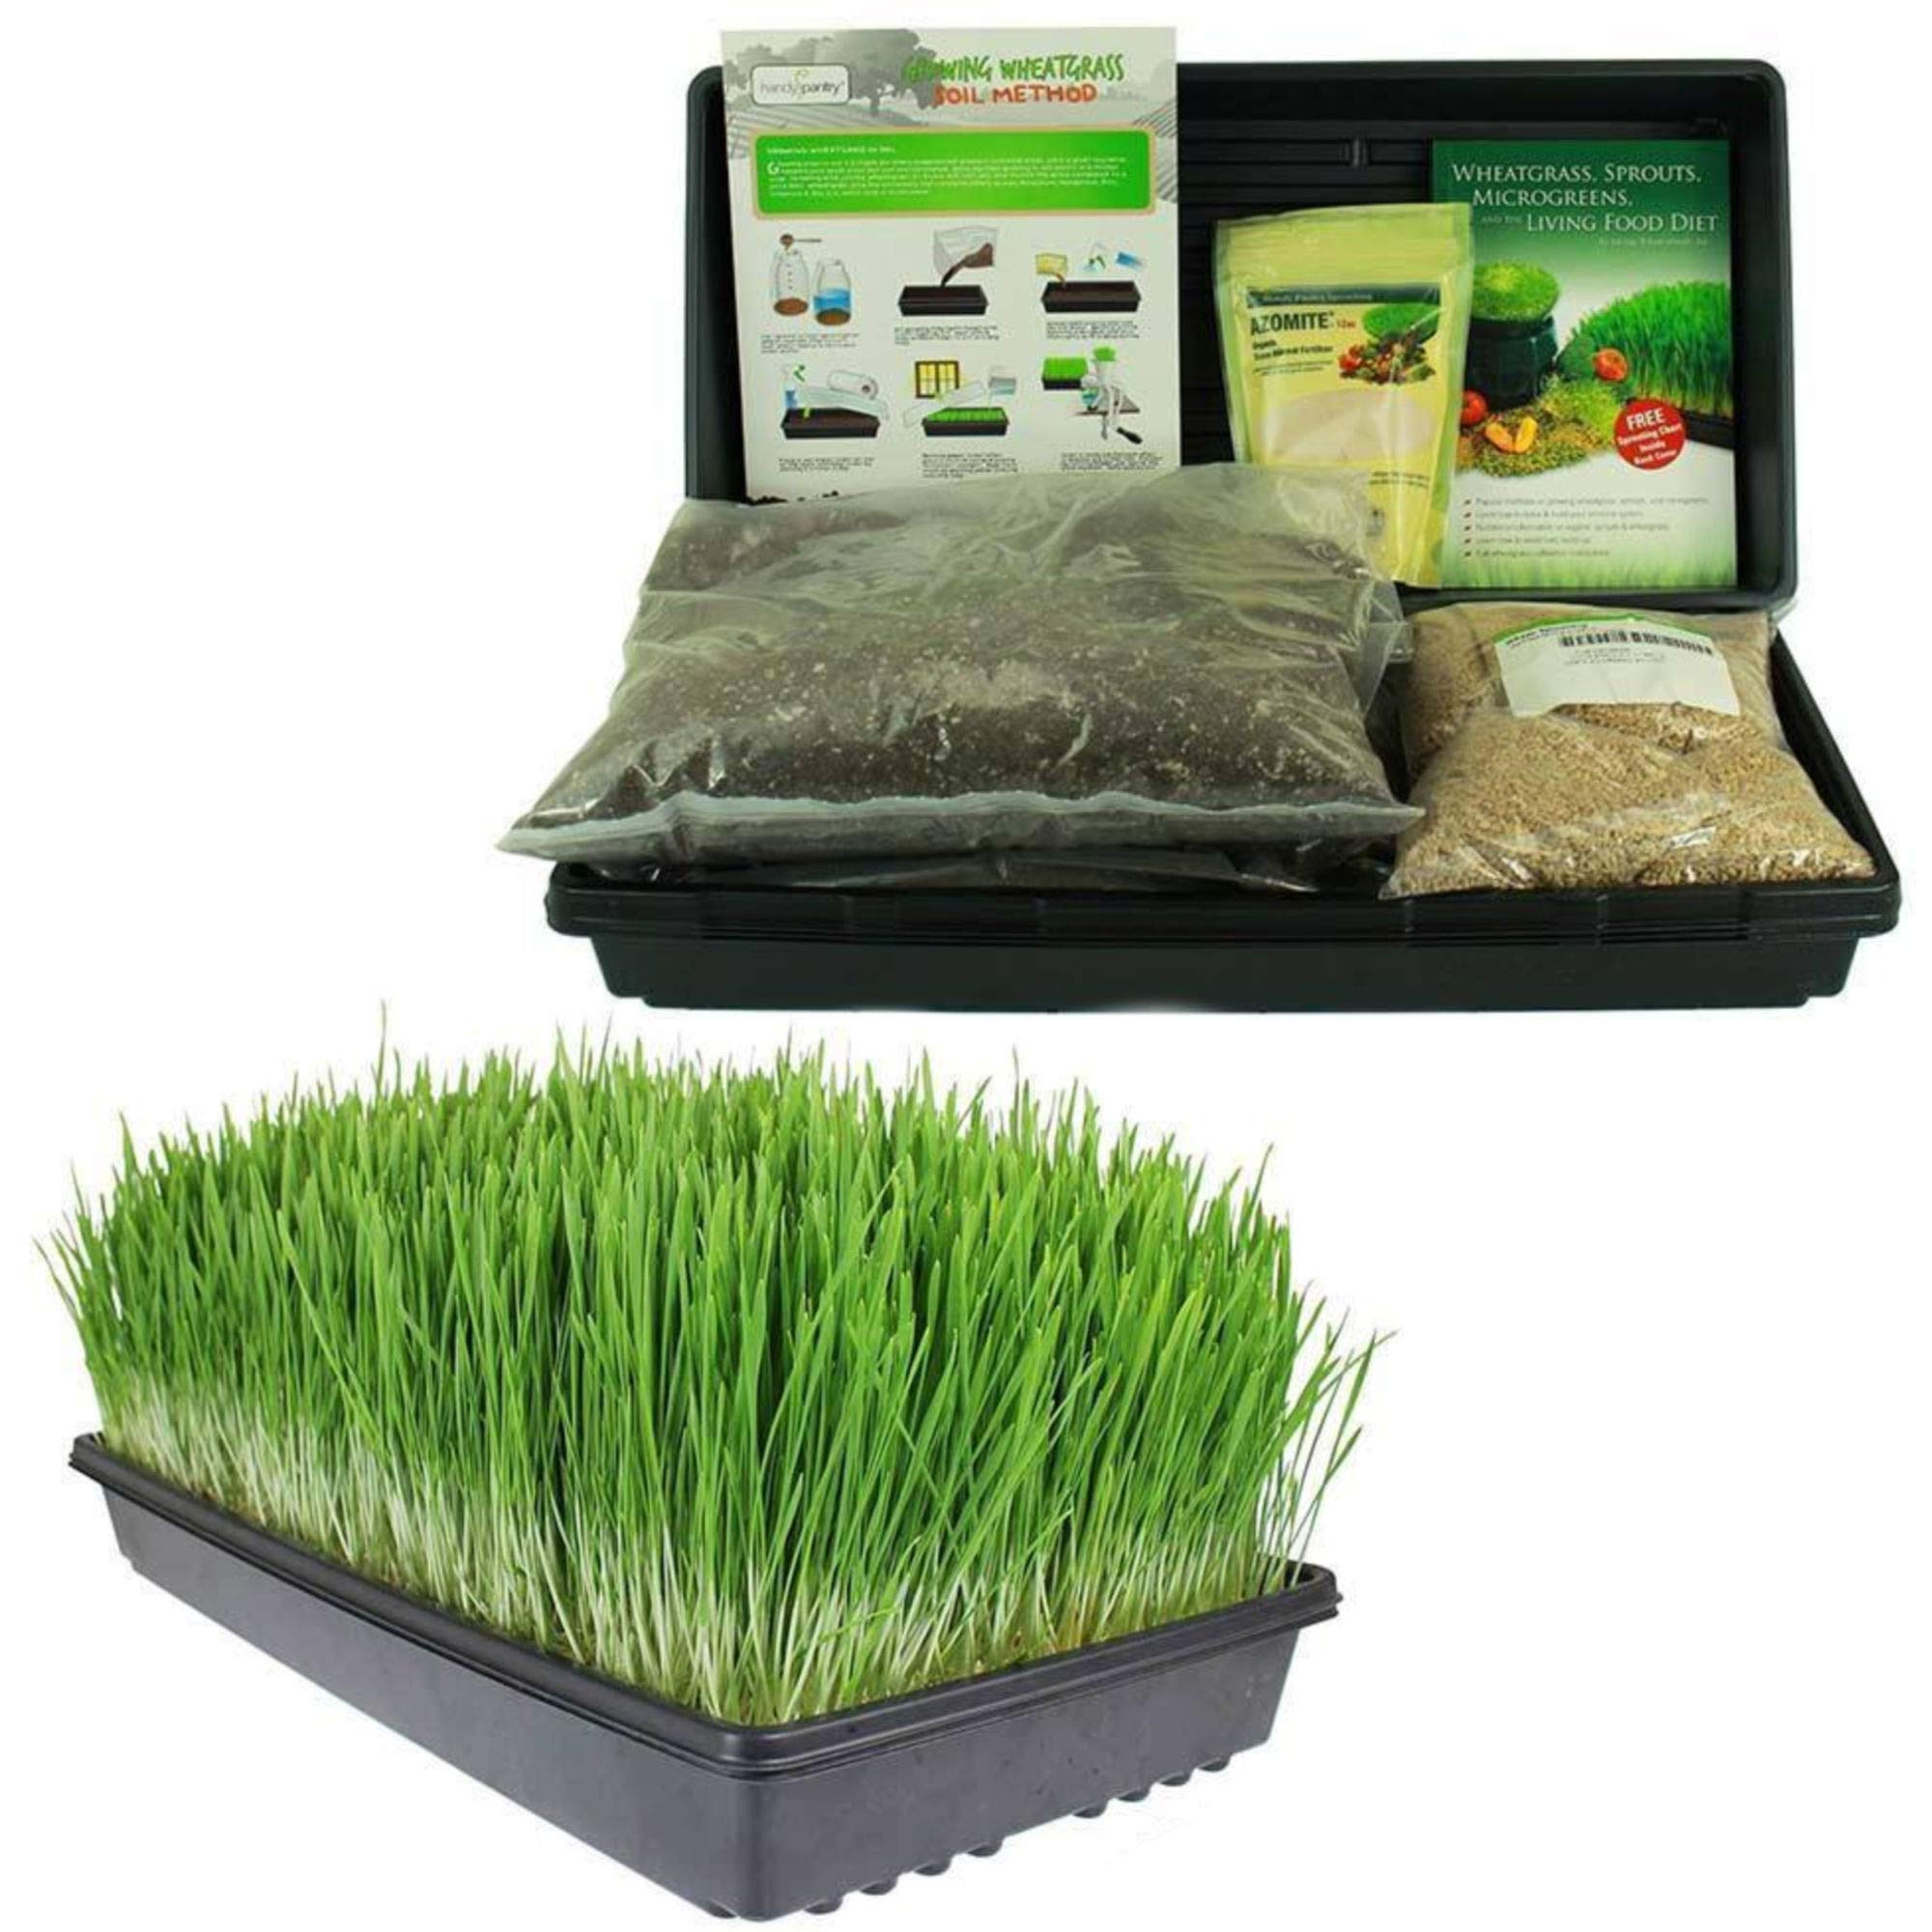 Certified Organic Wheatgrass Growing Kit | Grow & Juice Wheat Grass: Trays, Seed, Soil, Instructions, Wheatgrass Book, Trace Mineral Fertilizer & More by Living Whole Foods